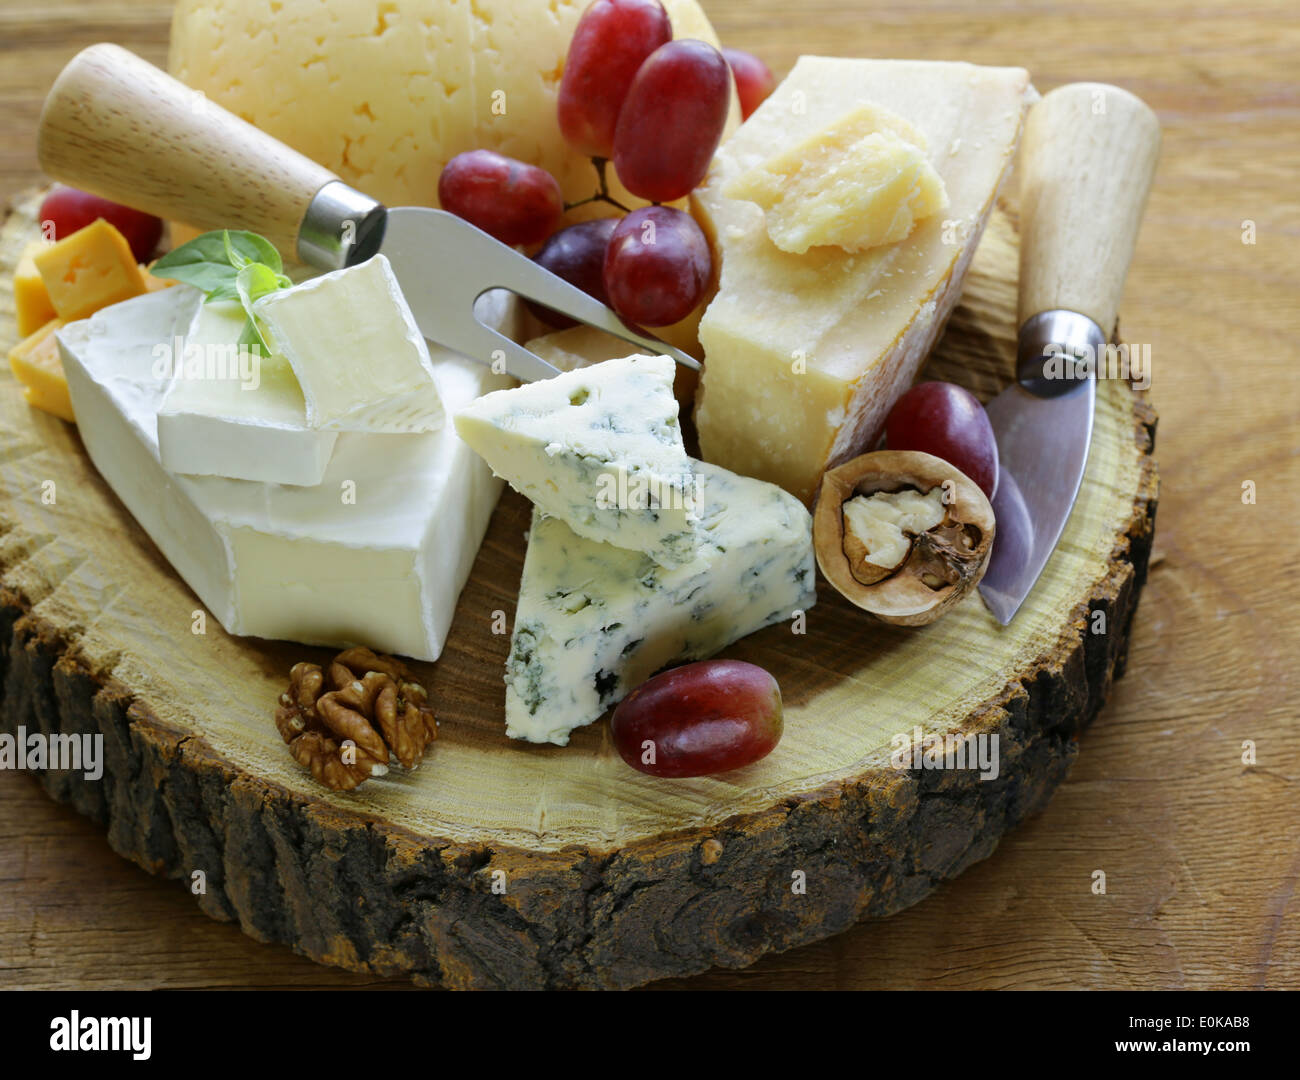 cheeseboard with assorted cheeses (parmesan, brie, blue, cheddar) - Stock Image